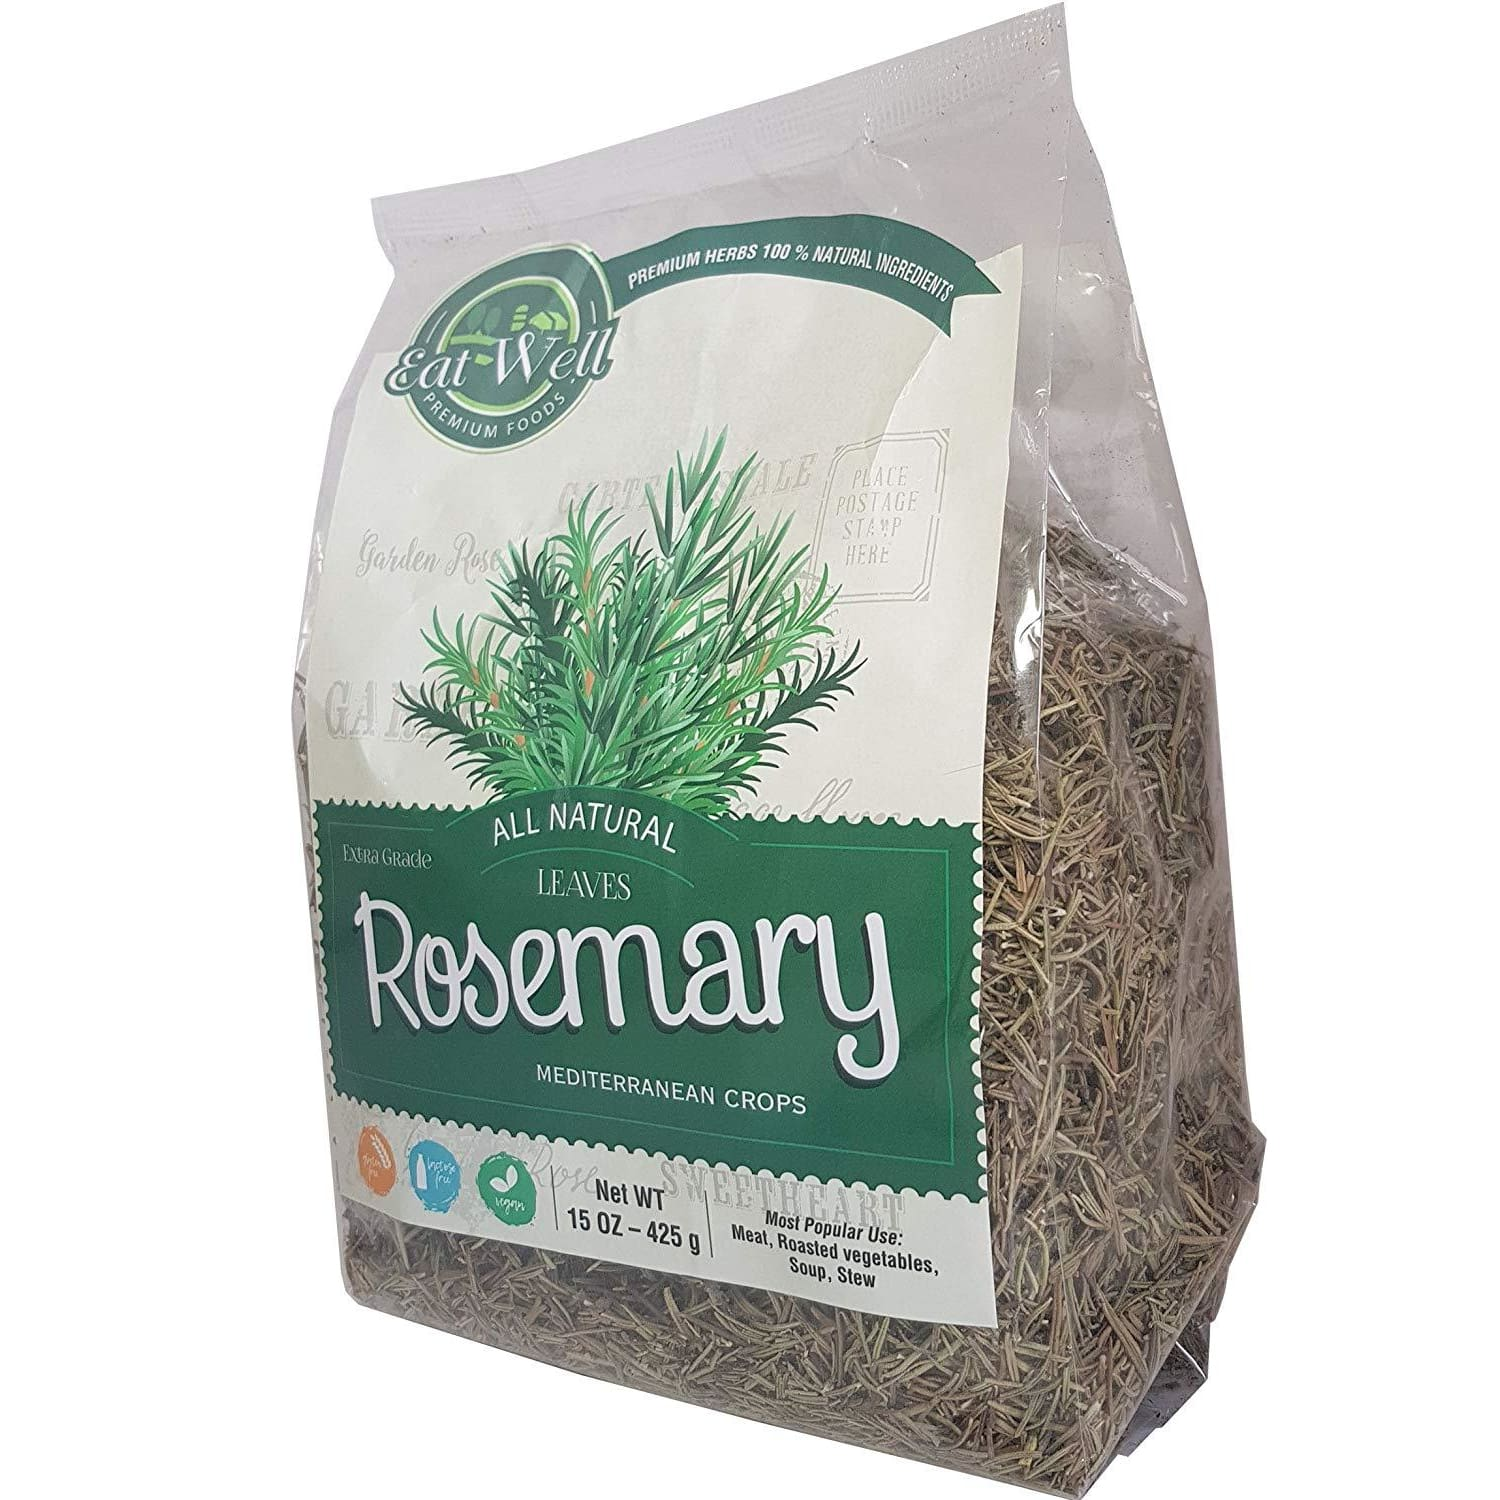 products/eat-well-premium-foods-rosemary-leaves-15-oz-bag-whole-dried-spice-rosmarinus-officinalis-natural-ounce-baby-product_940.jpg